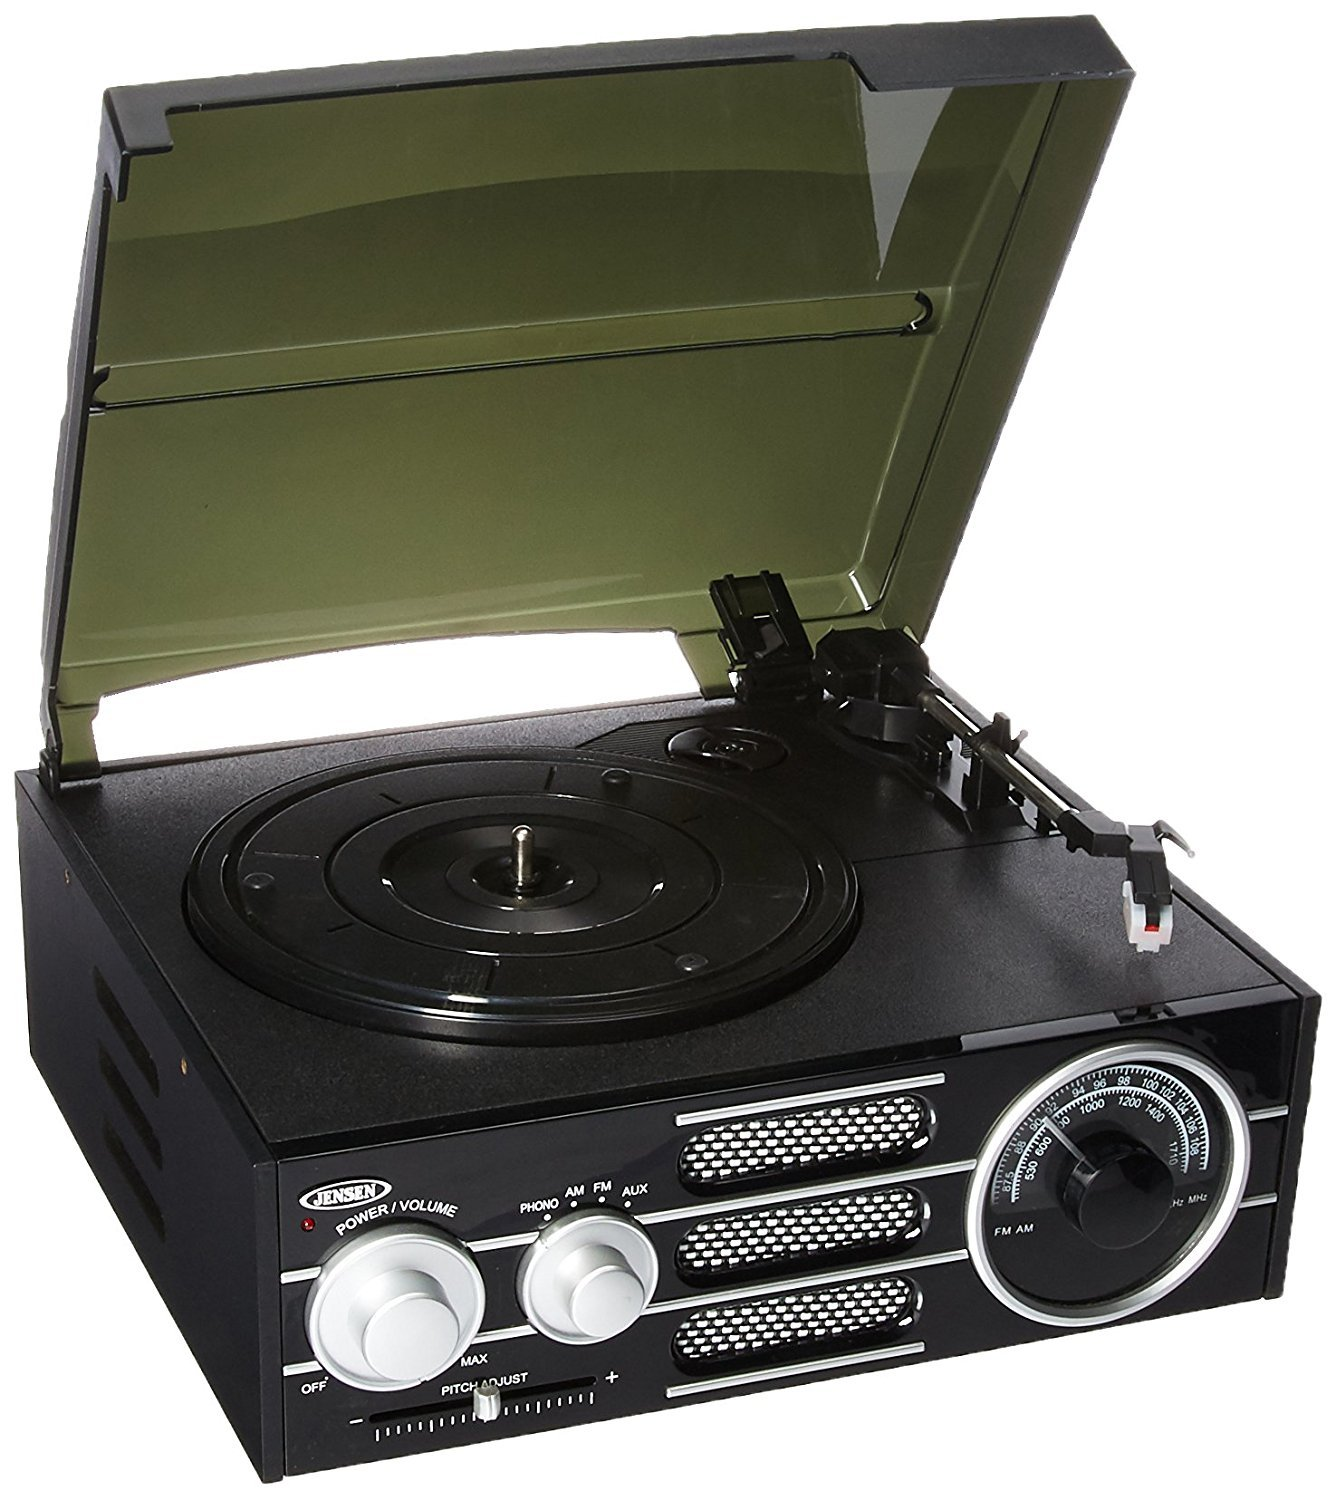 3-speed Turntable, Black Portable Record Player Audio Stereo Turntable Usb